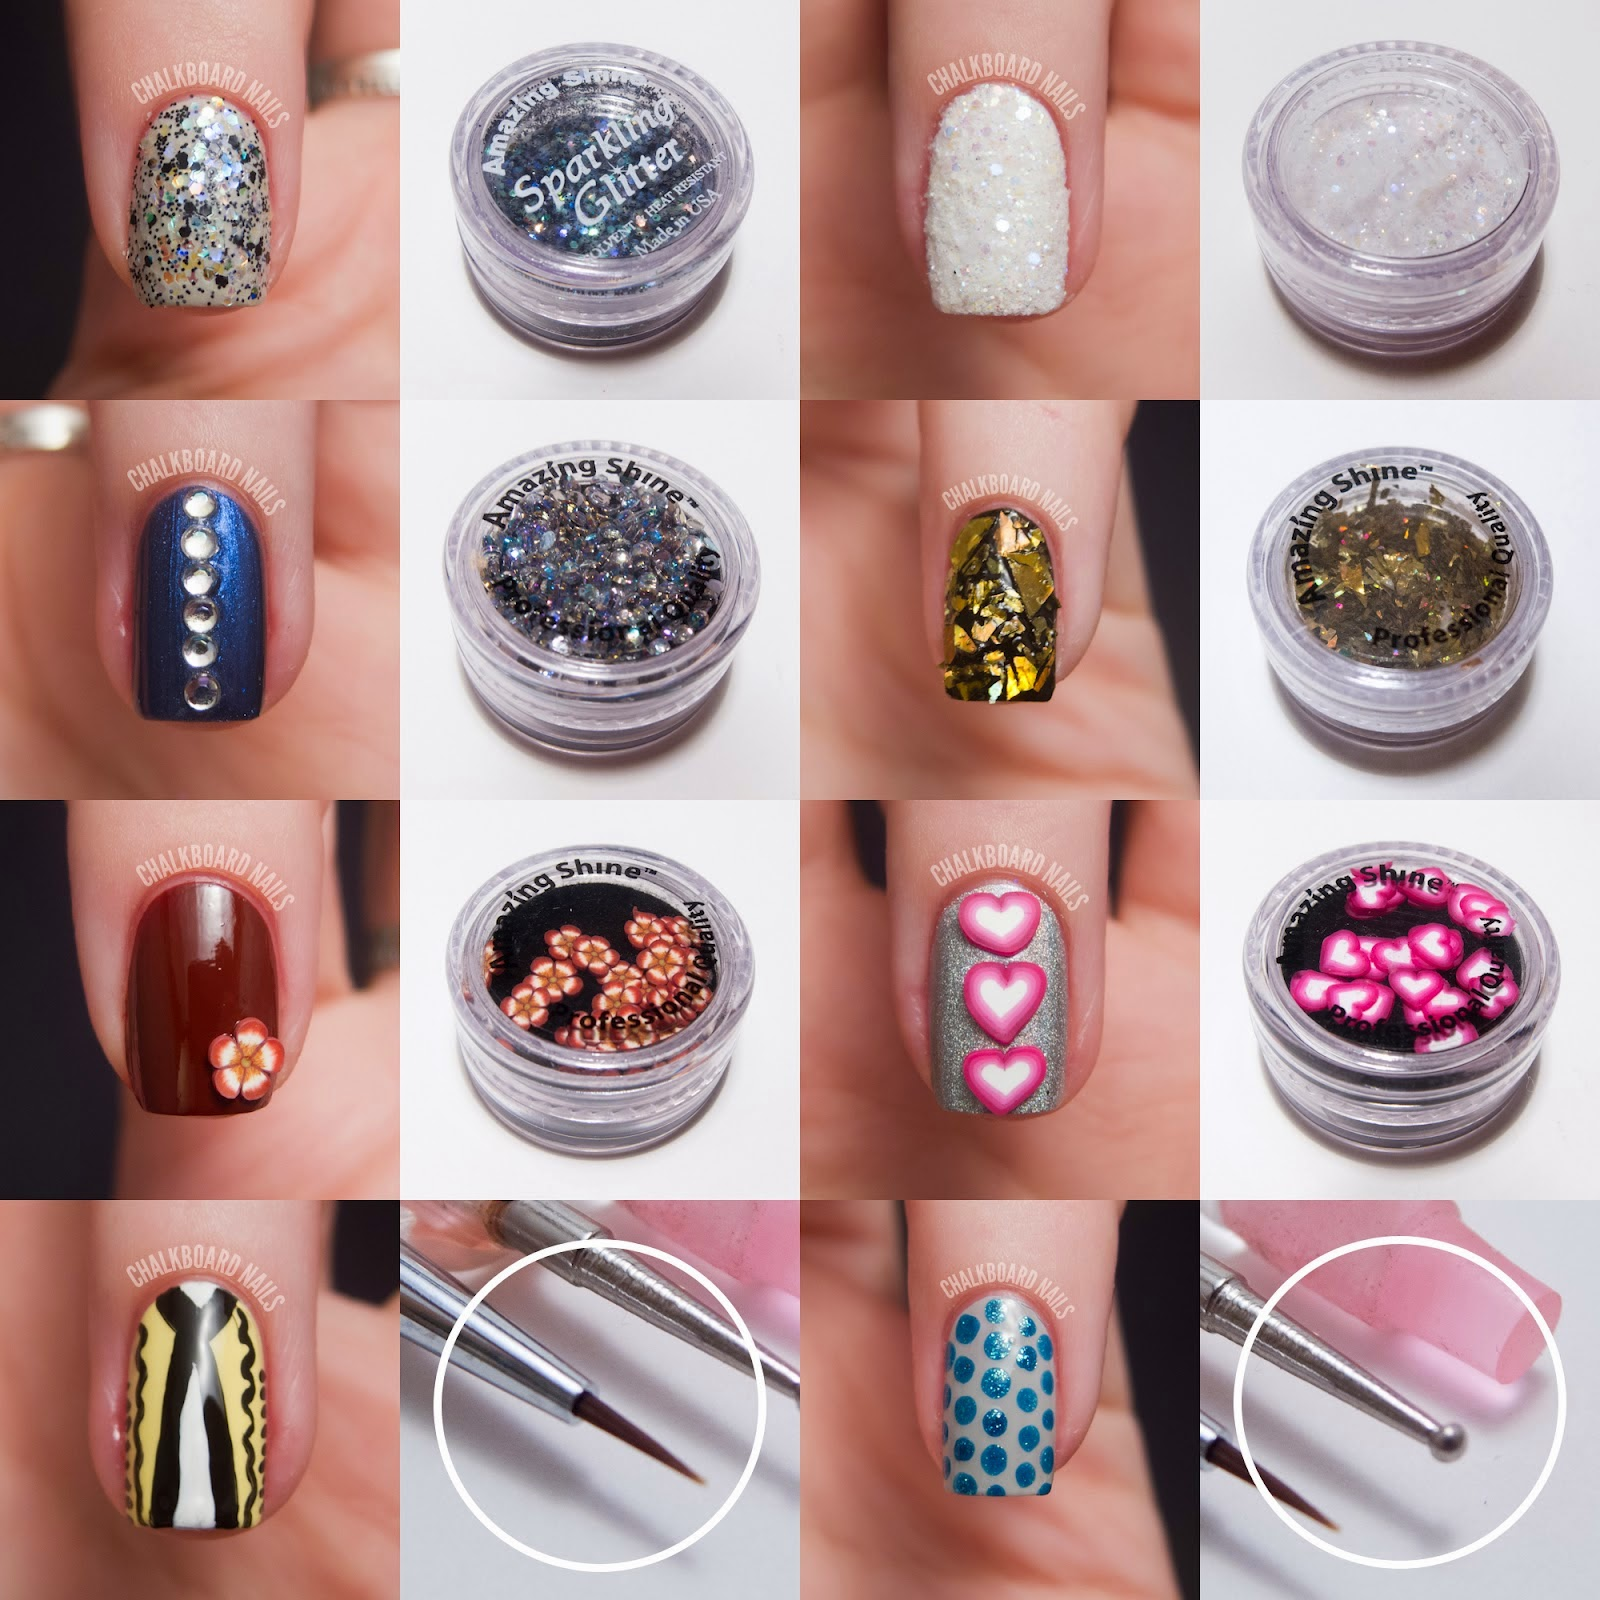 Nail Design: Nail Art Design Kit